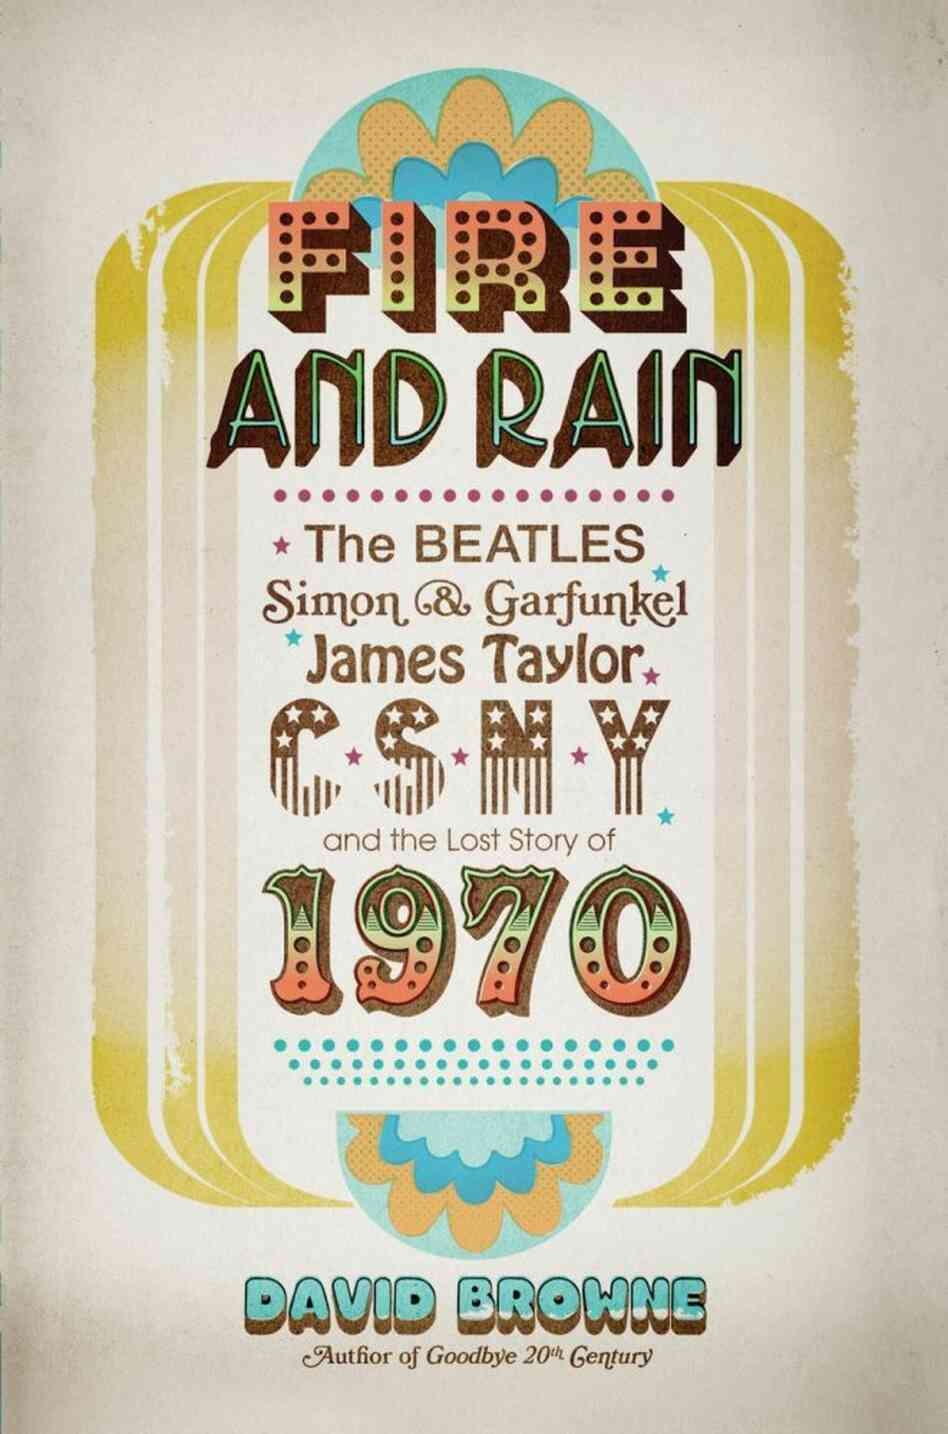 Cover of Fire and Rain: The Beatles, Simon & Garfunkel, James Taylor, CSNY, and the Lost Story of 1970, by David Browne